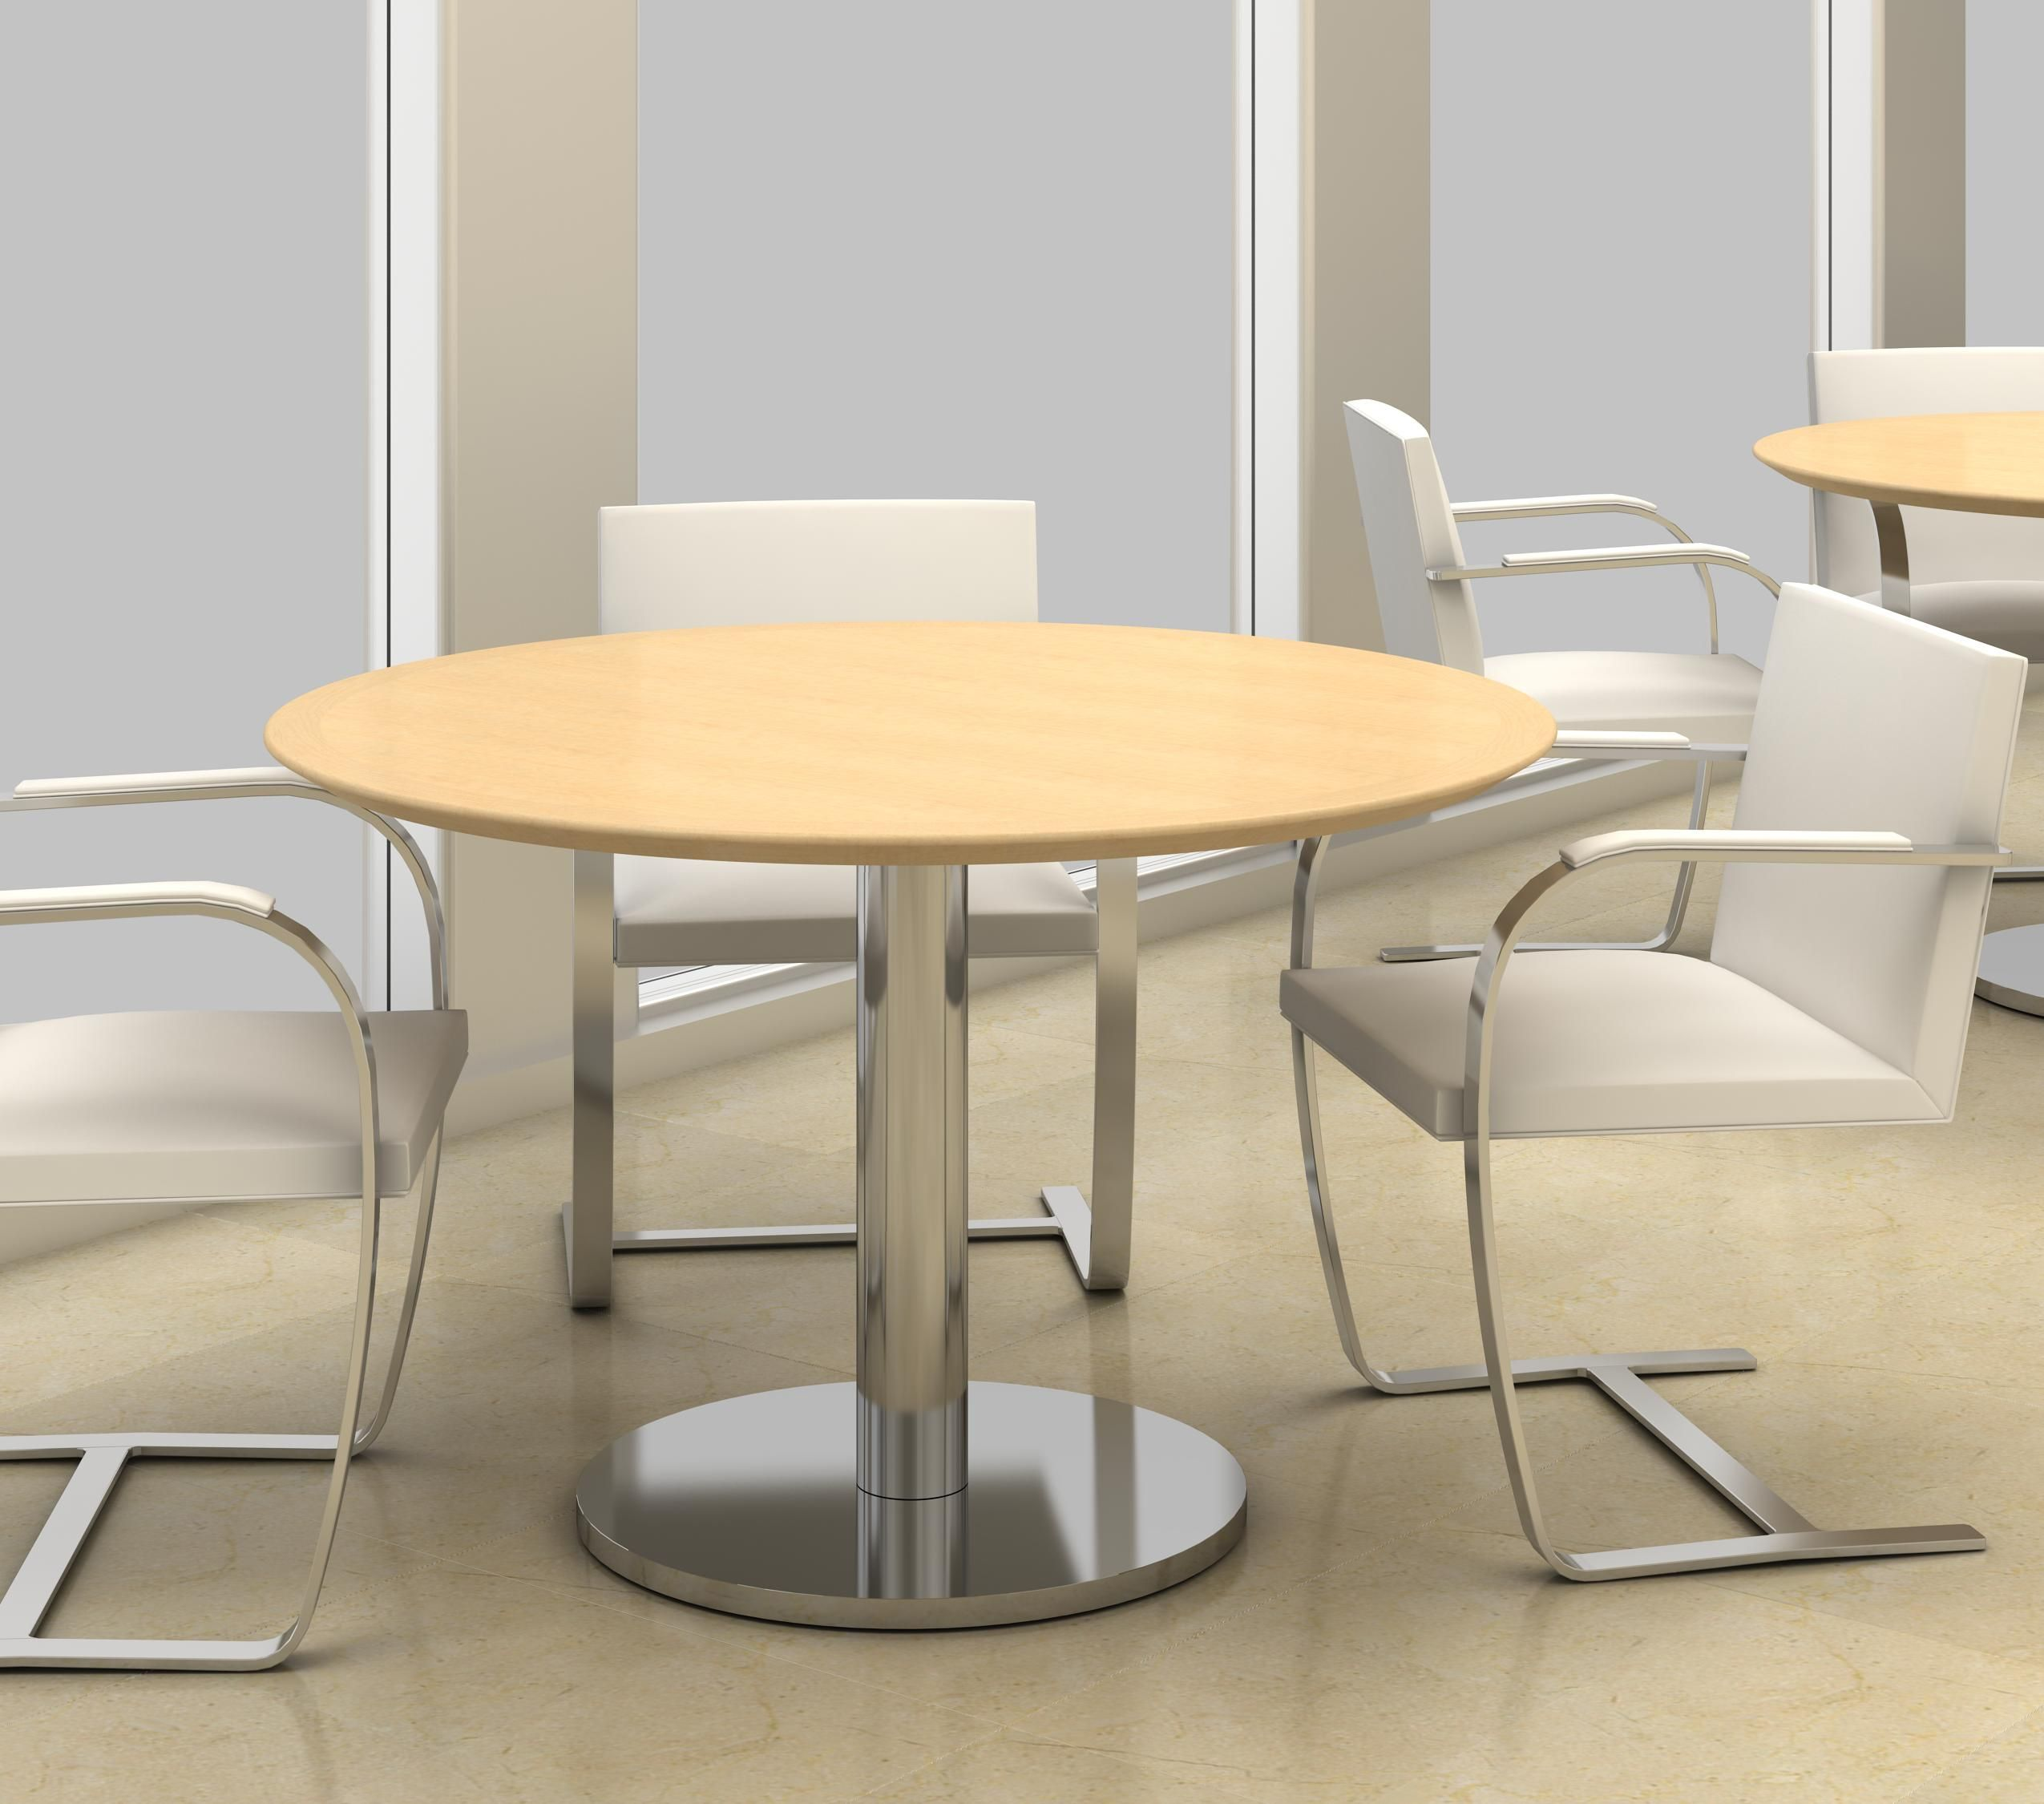 Dining Furniture Manufacturers: Nevins Atlantis Dining Table